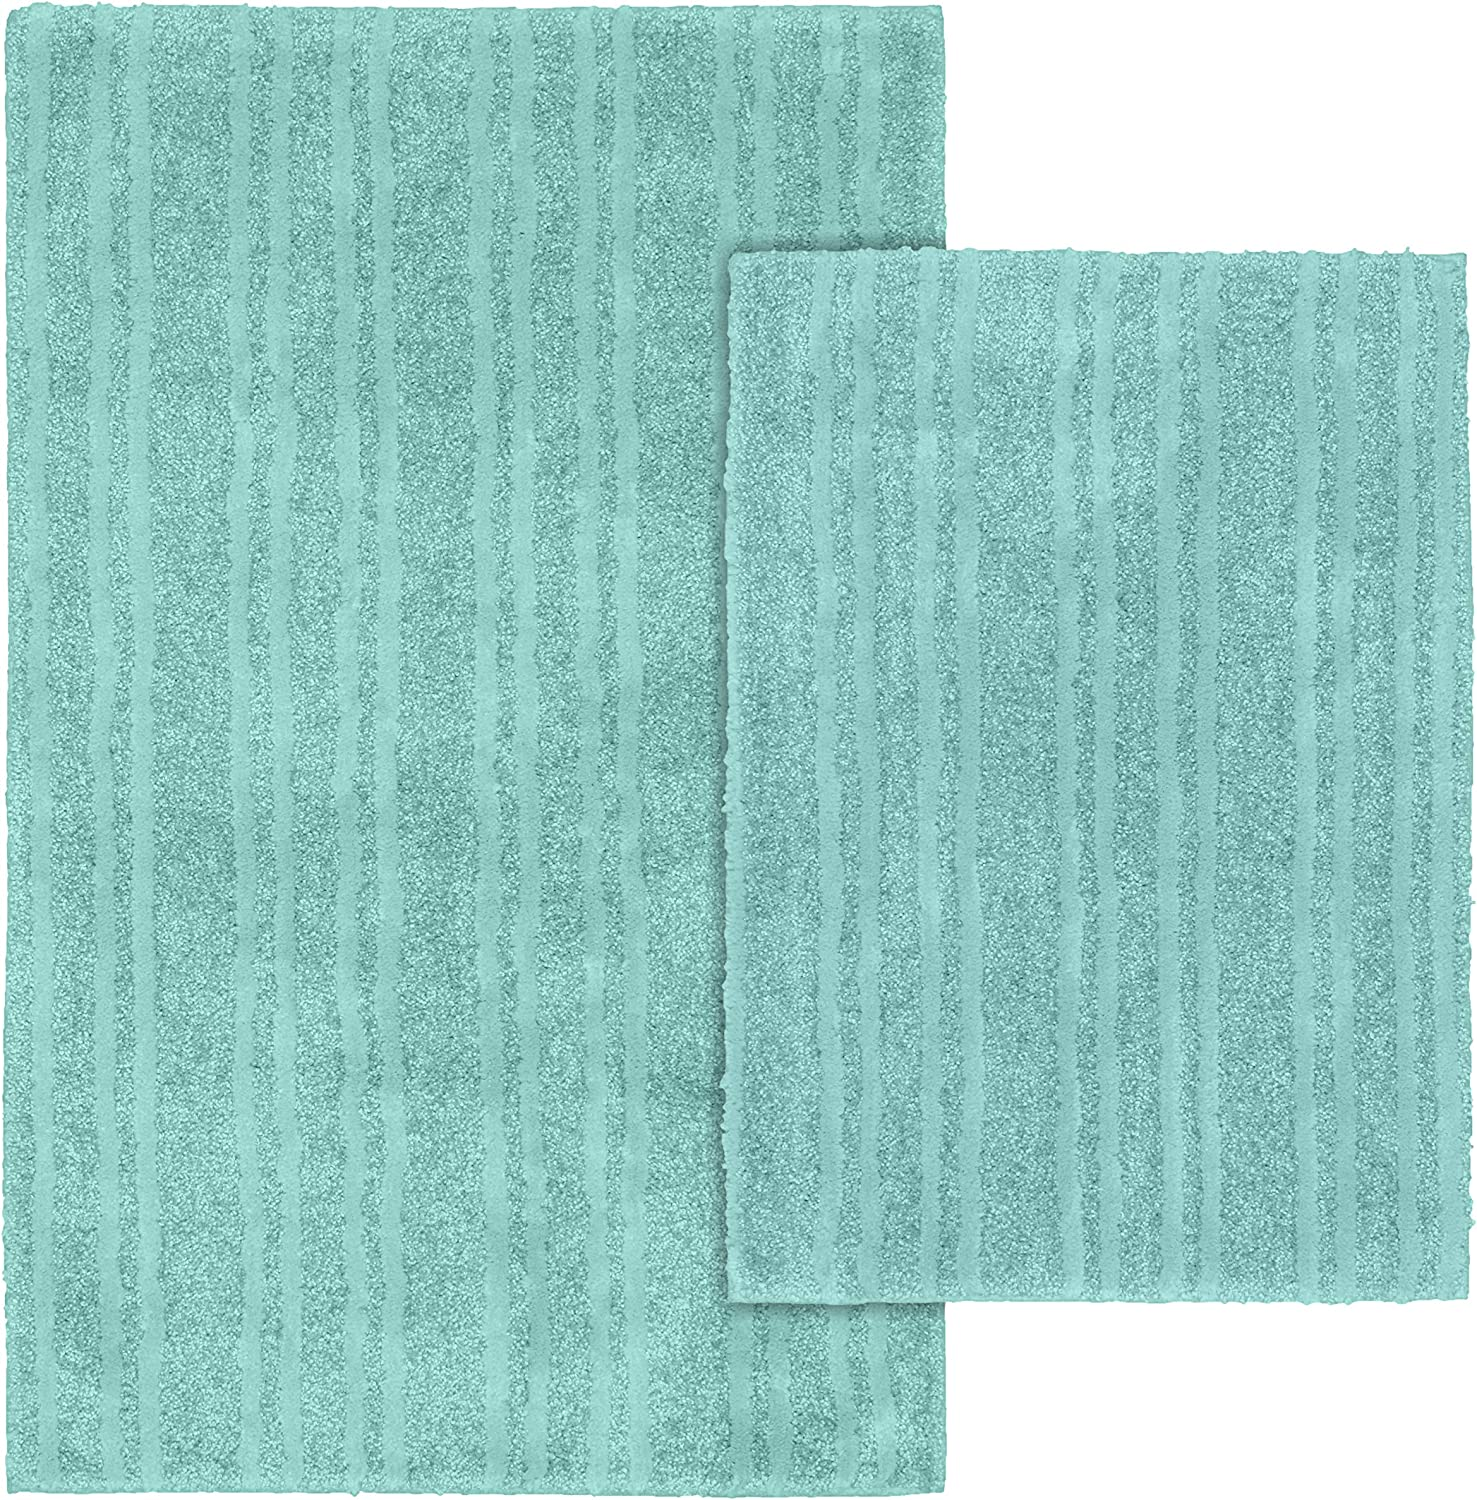 Garland Rug Challenge the lowest price of Japan ☆ Grand Isle Bath Set Sea Foam 2-Piece OFFicial store